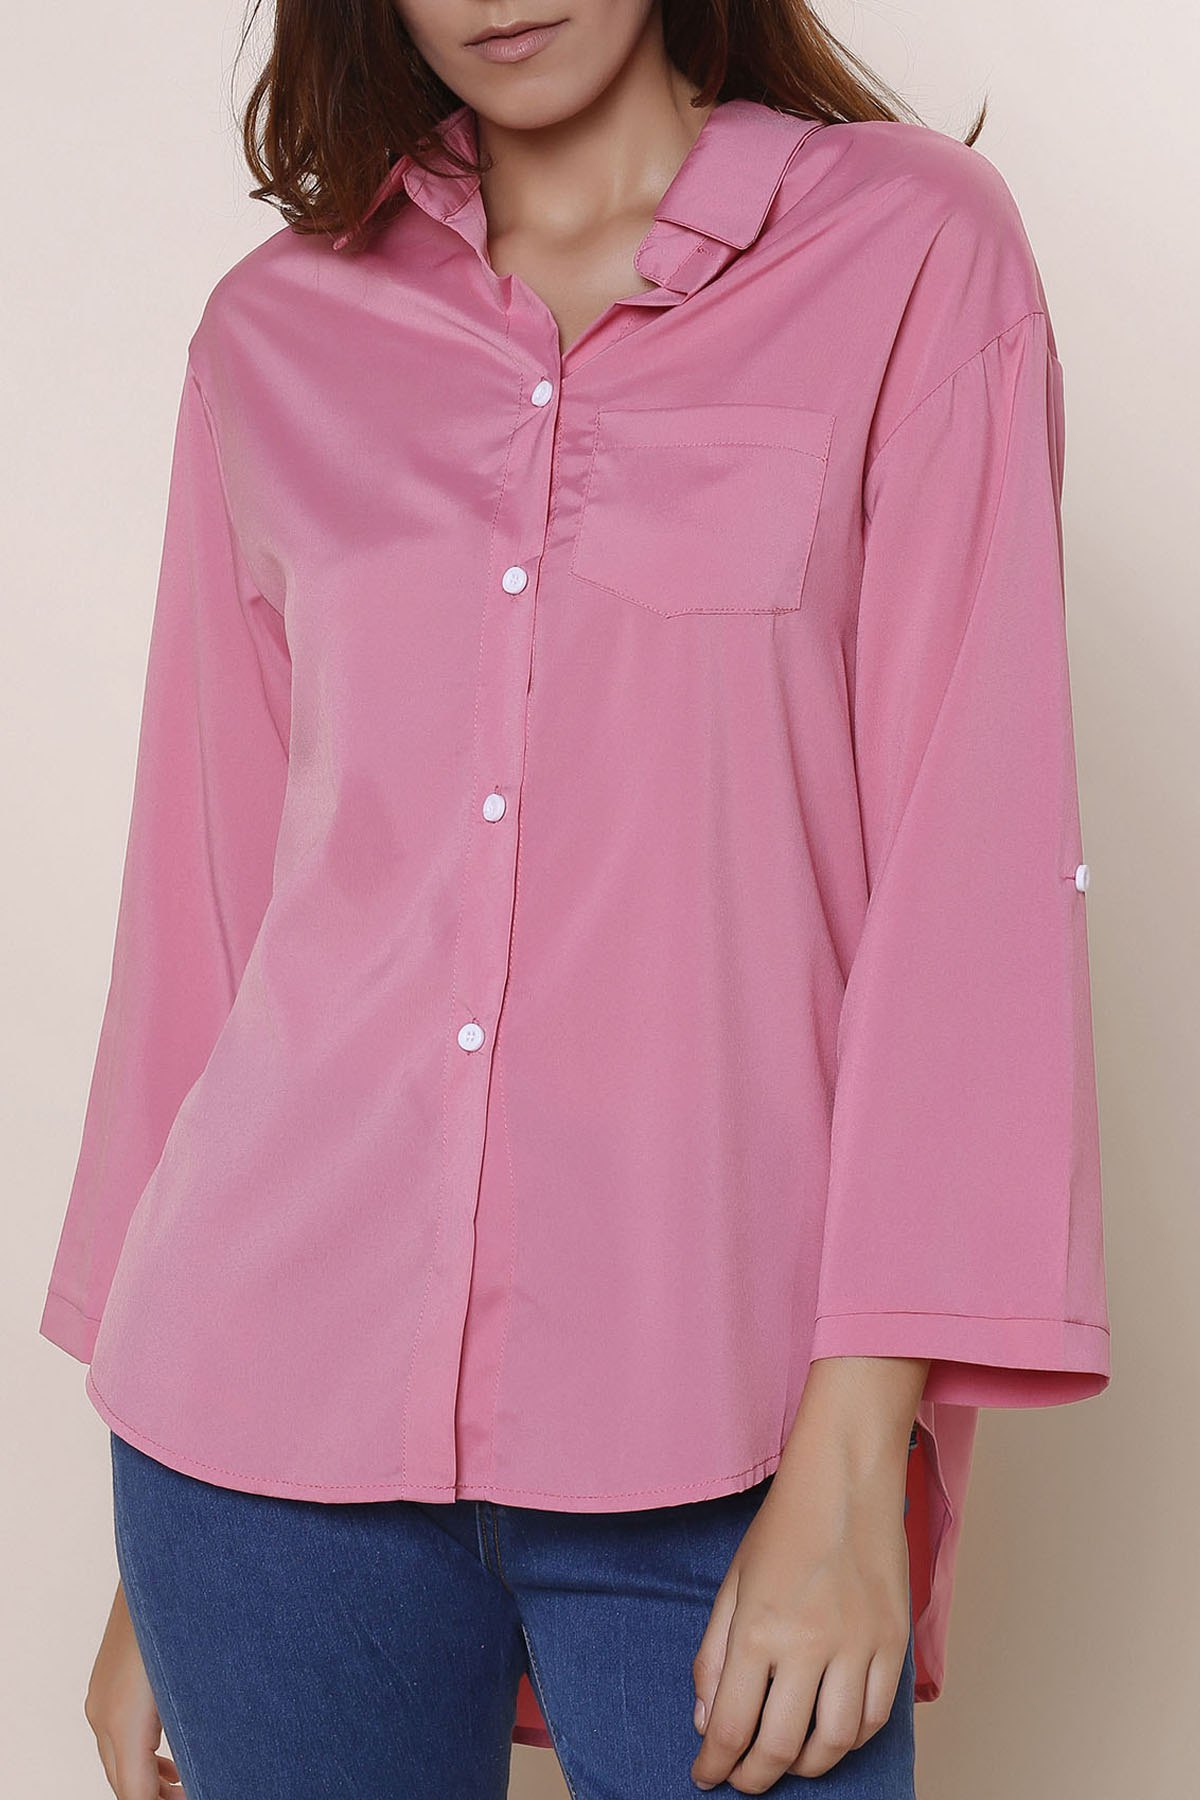 OL Style Long Sleeve  High-Low Solid Color Hem Shirt For Women - PINK 3XL